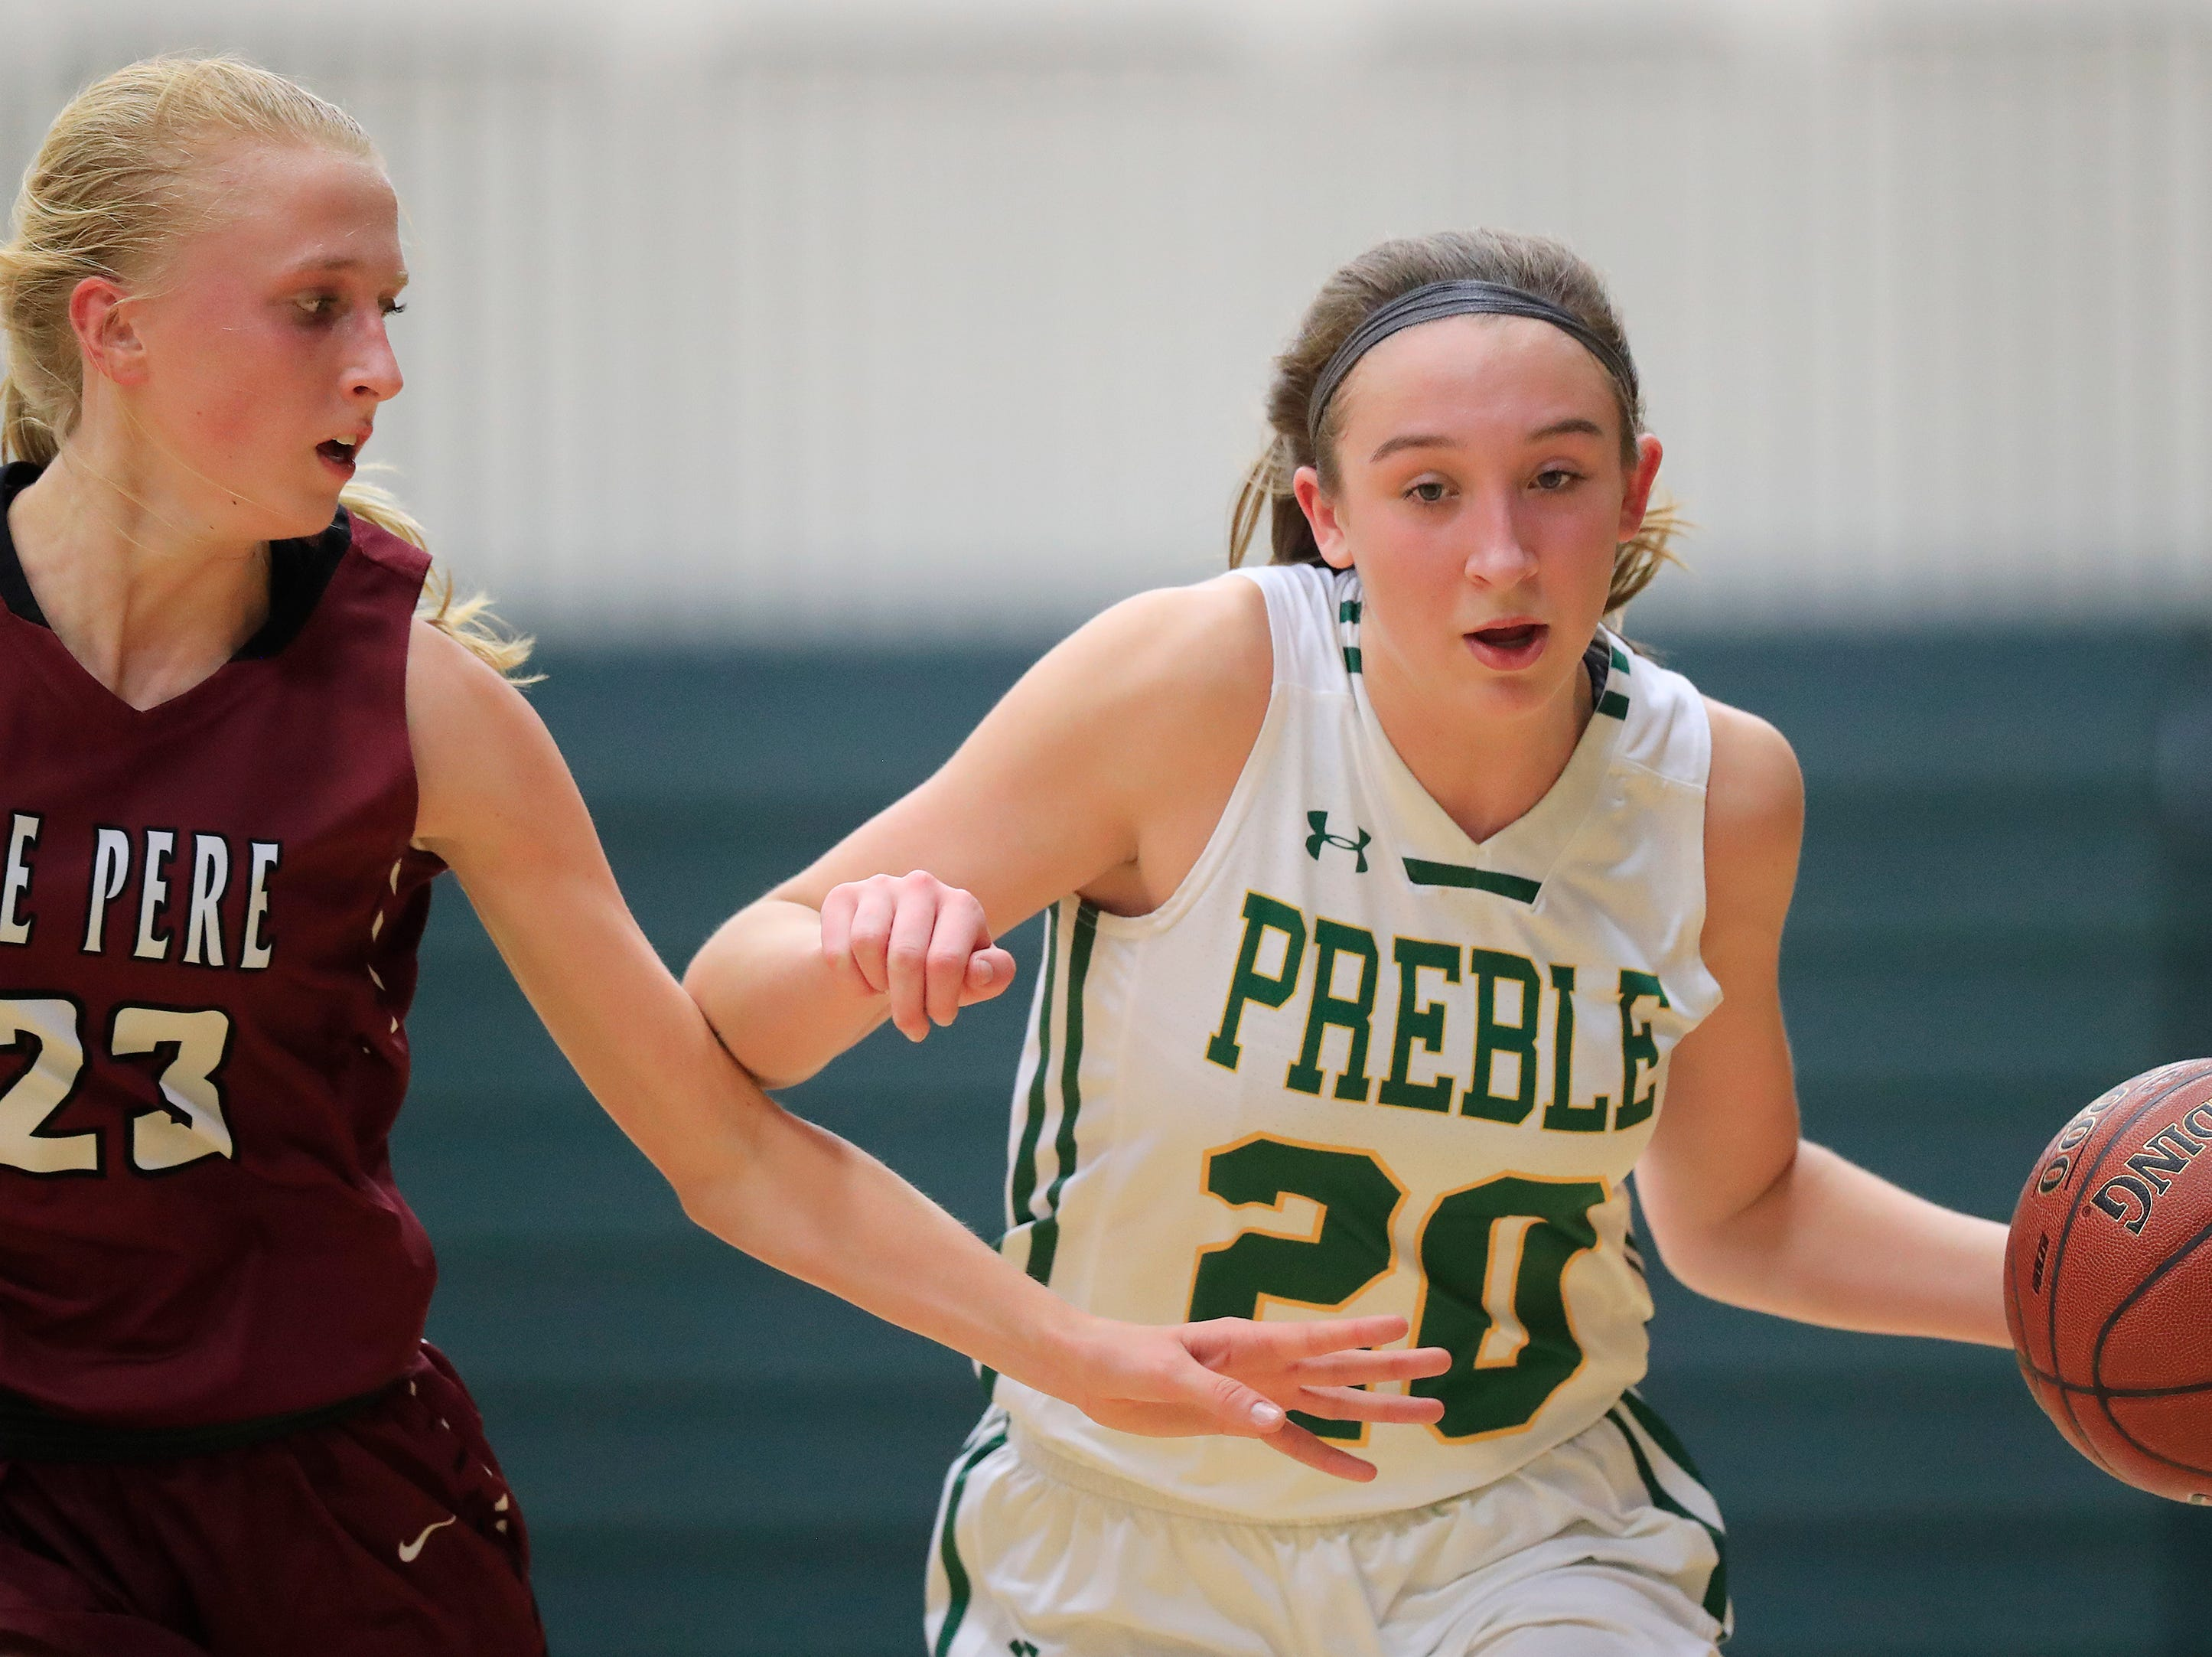 Green Bay Preble's Carley Duffney (20) dribbles against De Pere's Jordan Meulemans (23) in a girls basketball game at Preble high school on Tuesday, January 8, 2019 in Green Bay, Wis.